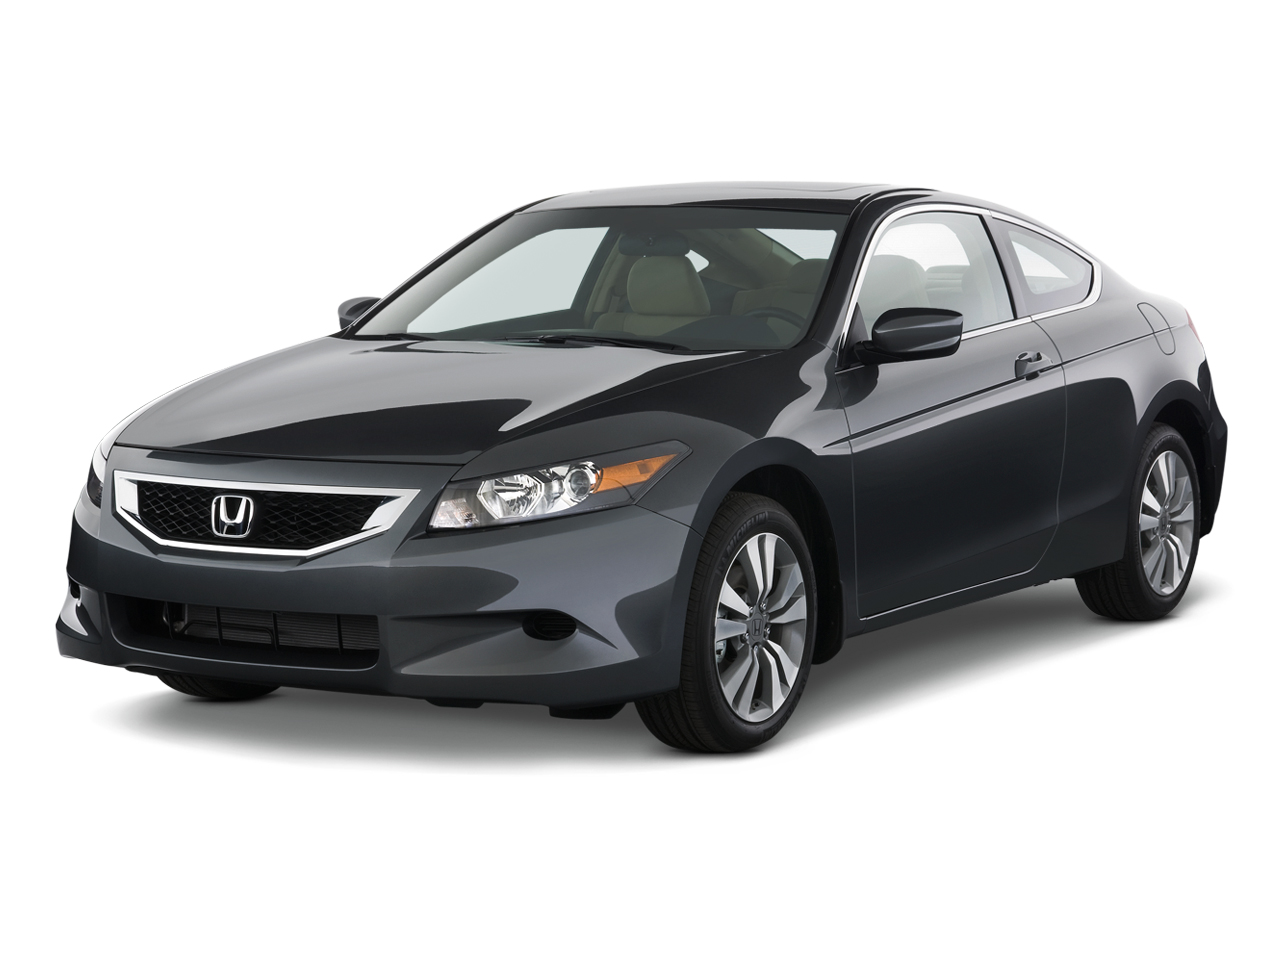 Honda Accord #10